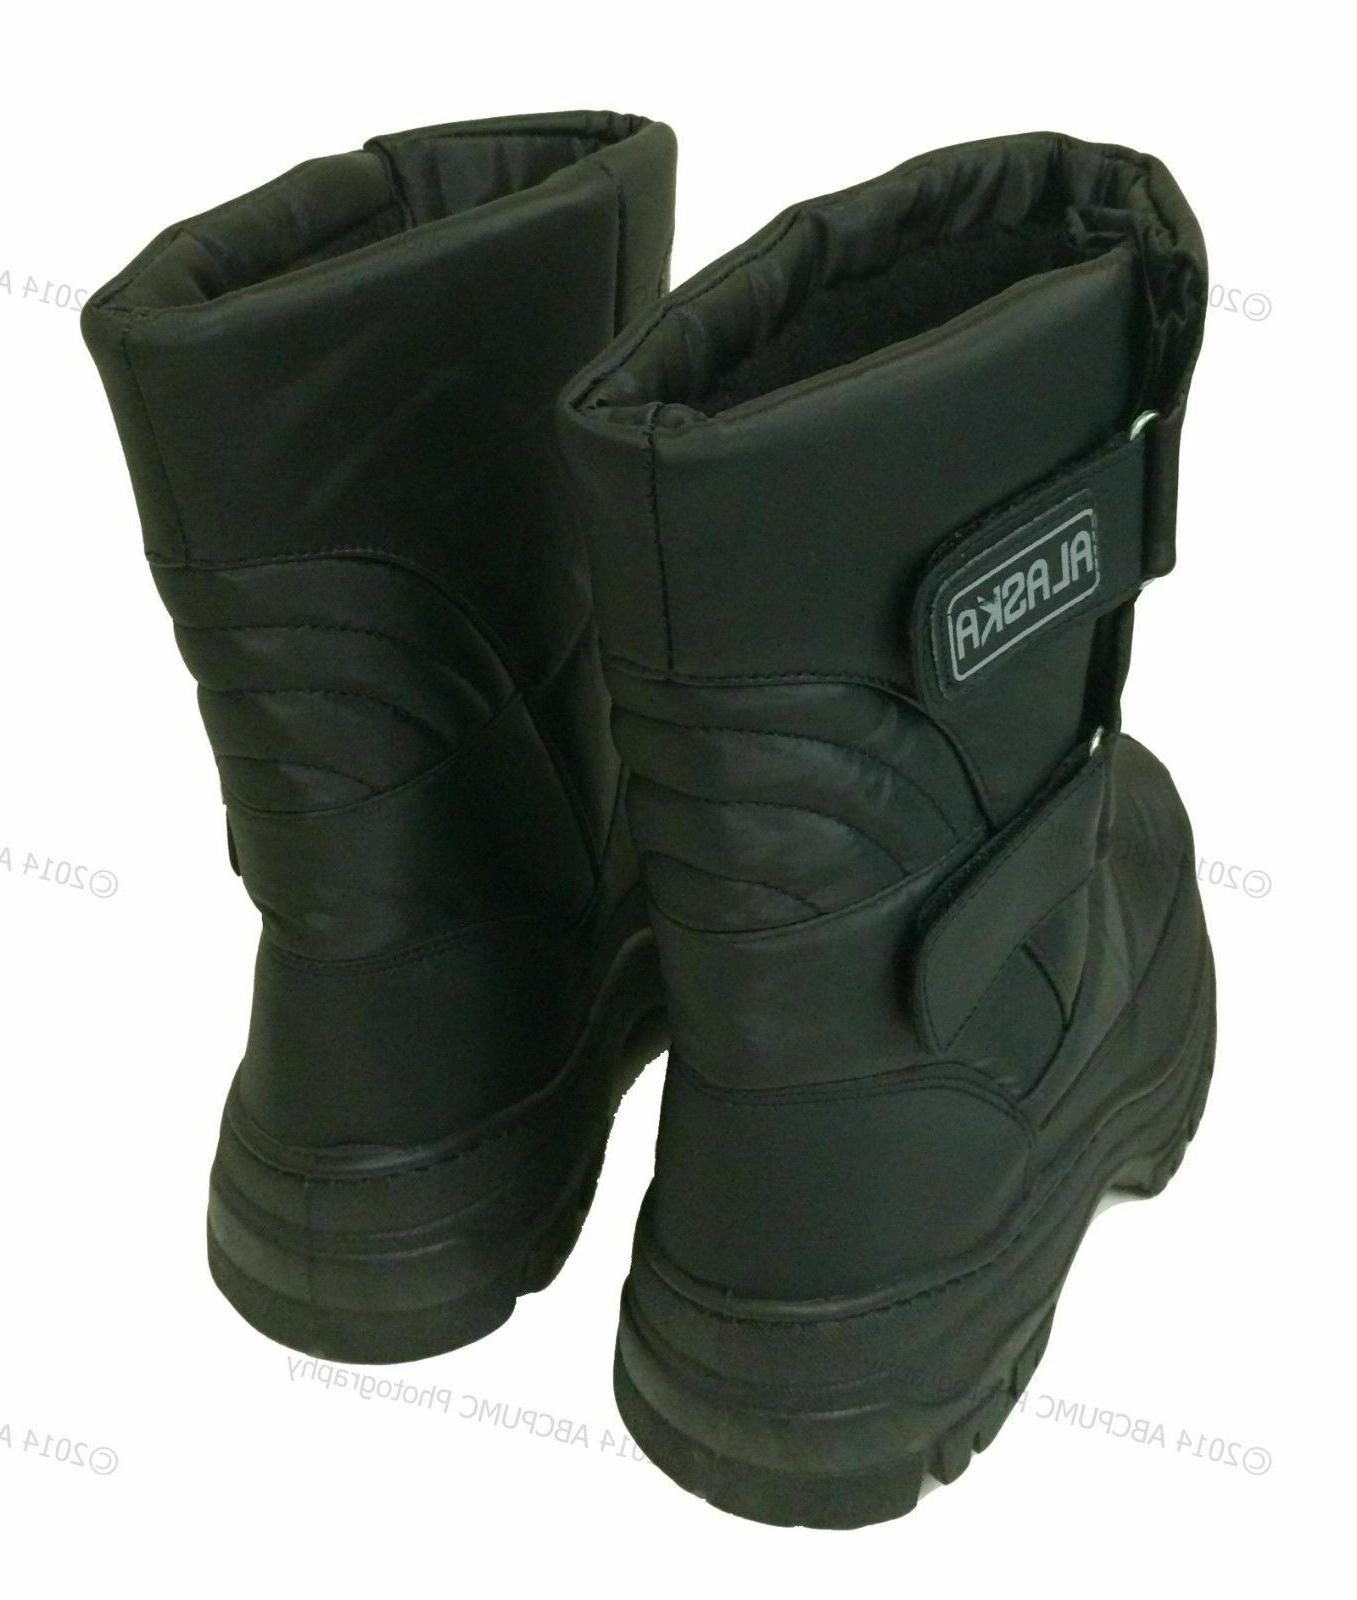 brand new snow winter boots size 10